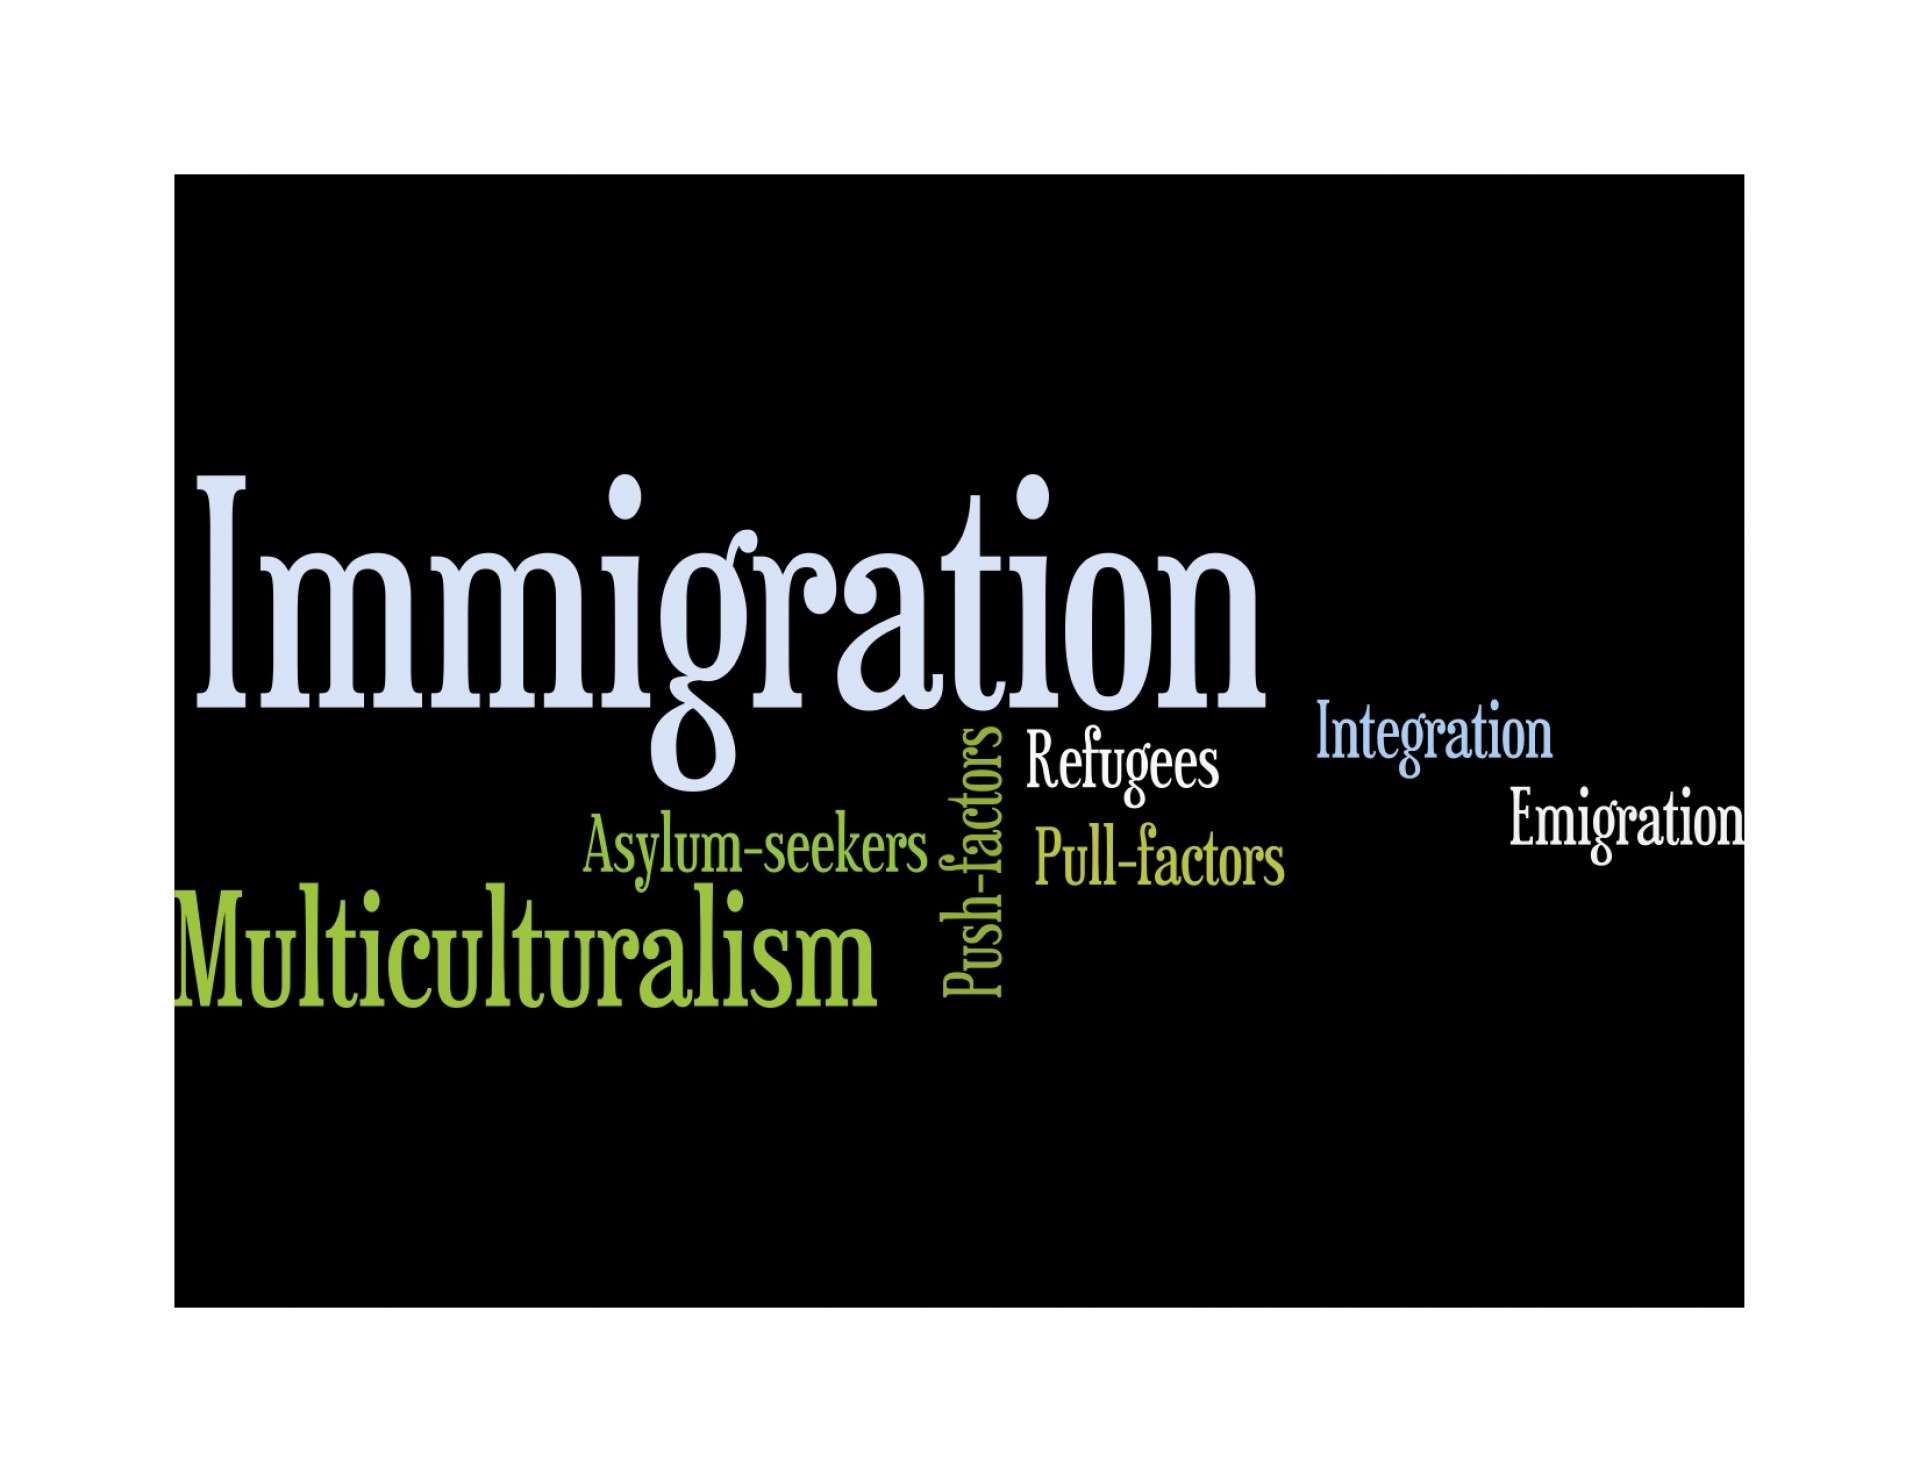 010 Conclusion On Immigration Essay Immigration20wordle Fearsome 1920